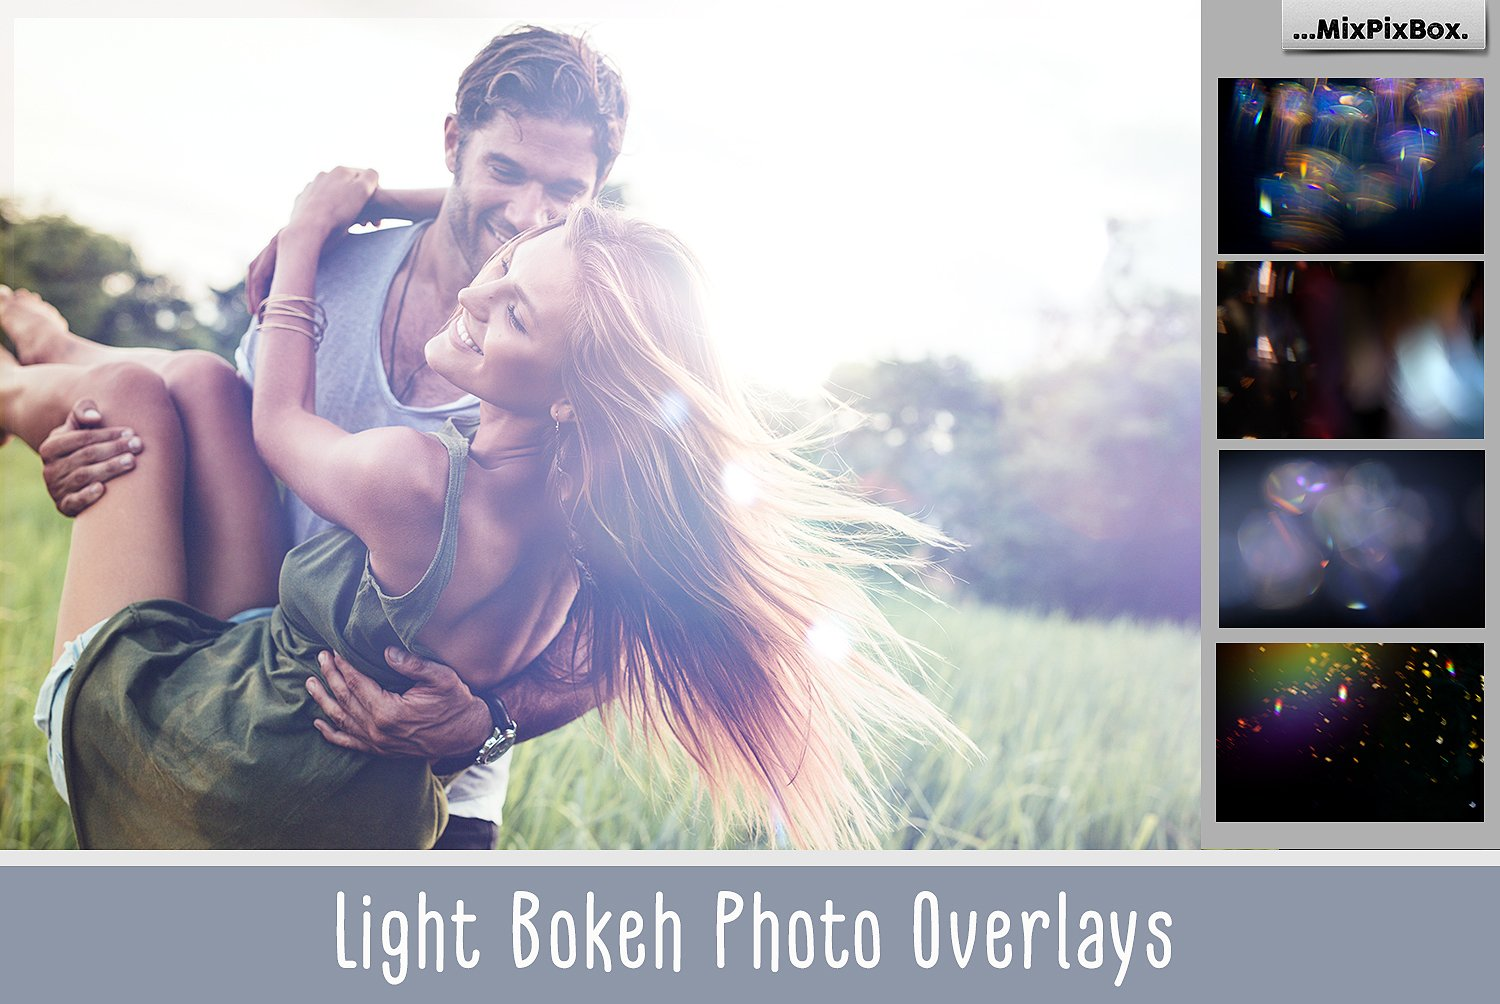 60 Light Bokeh Photo Overlays